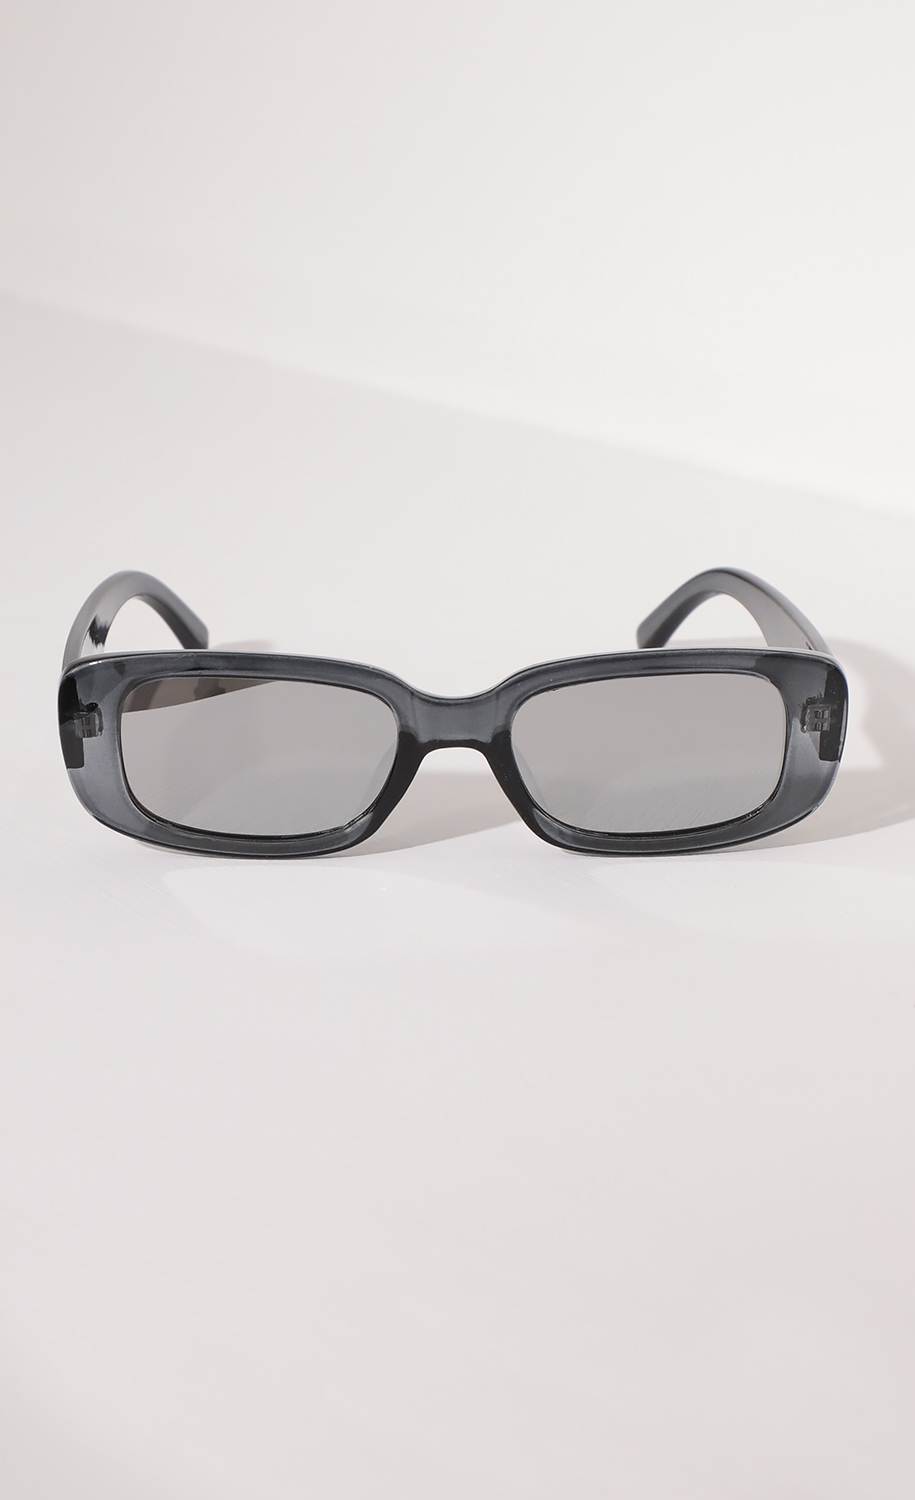 Beverly Rectangular Retro Sunglasses in Clear Gray